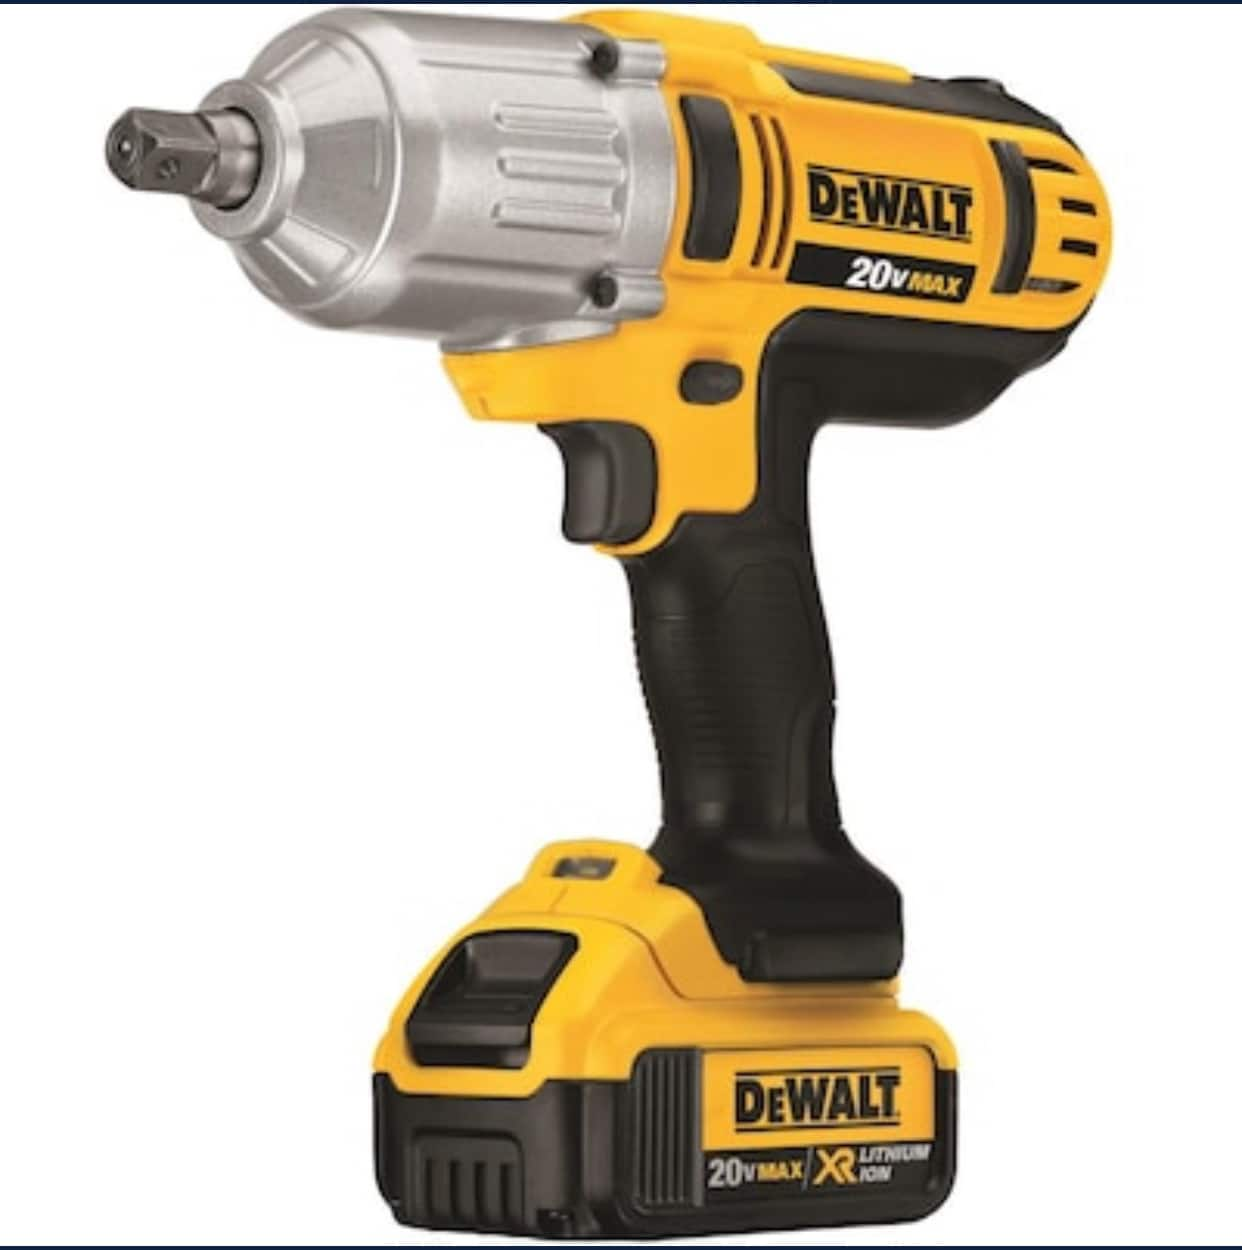 Lowes DEWALT XR 20v Brushless 1/2-in Drive Cordless Impact Wrench (2x4 Ah-Batteries) and 10-Piece 1/2-in-Drive Hex Bit Driver Socket Set $229